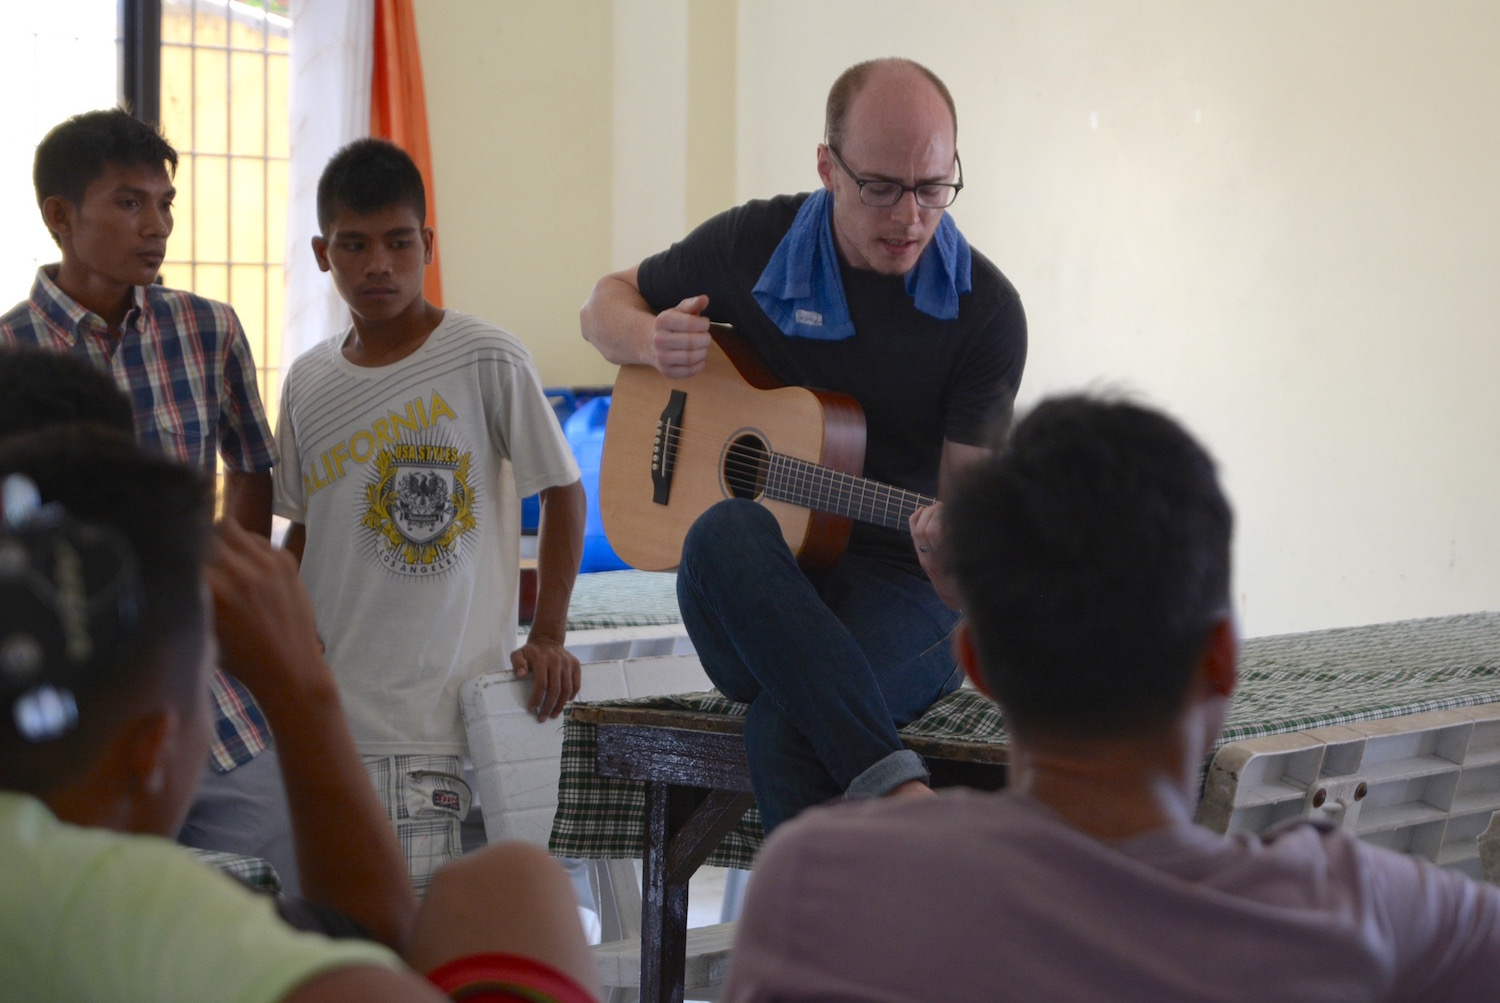 Intern Richard Gowen singing some of his original songs for our songwriting and recording workshop.